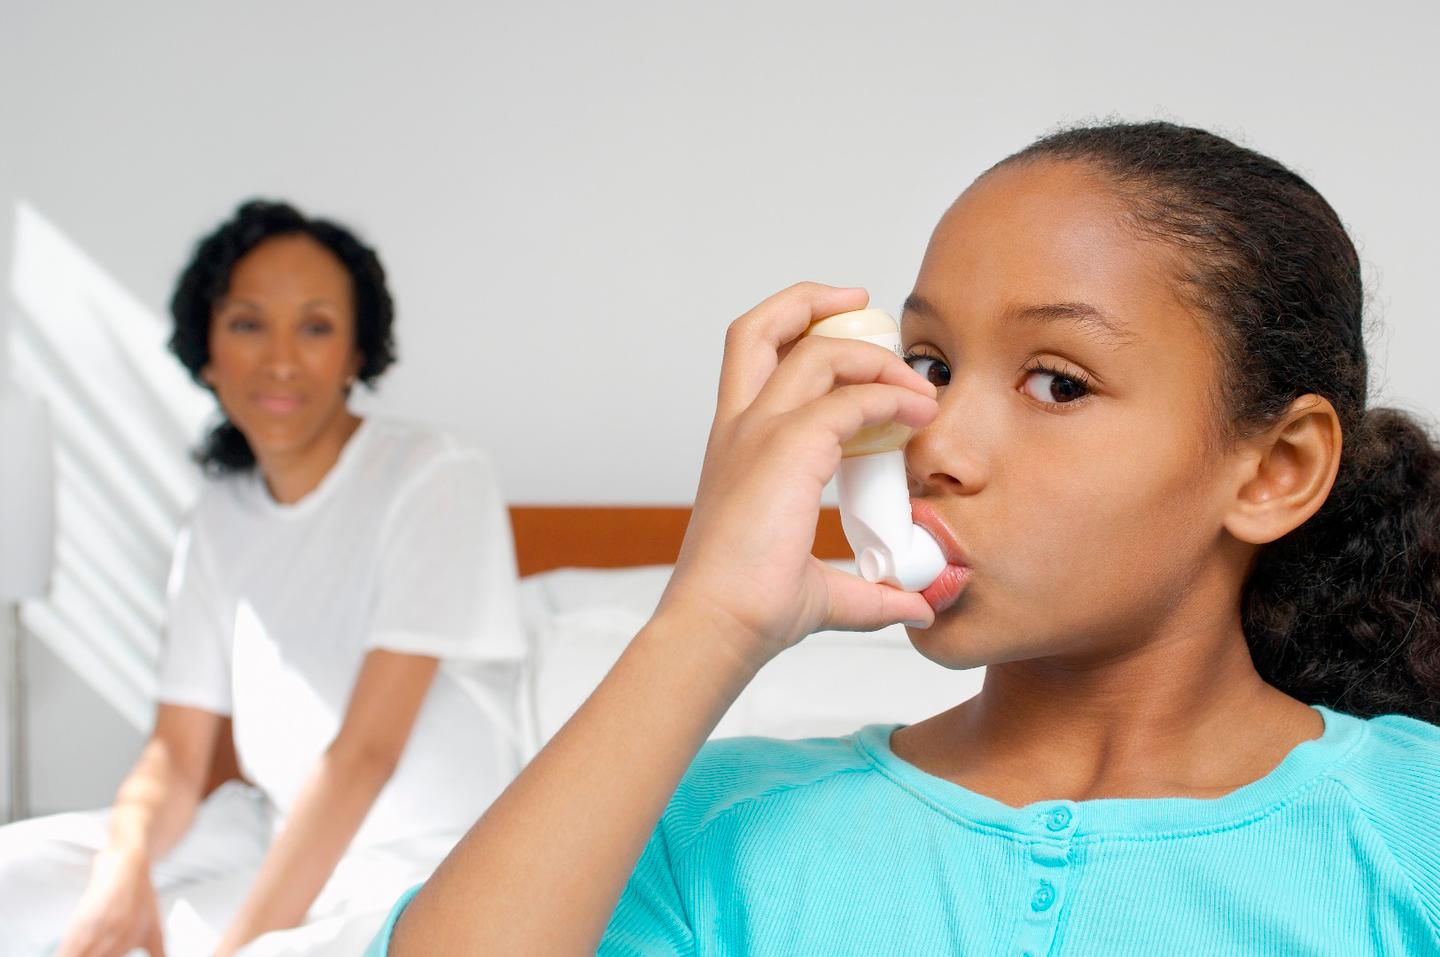 Inhalers don't work for all asthma sufferers, and can cause unwanted side effects